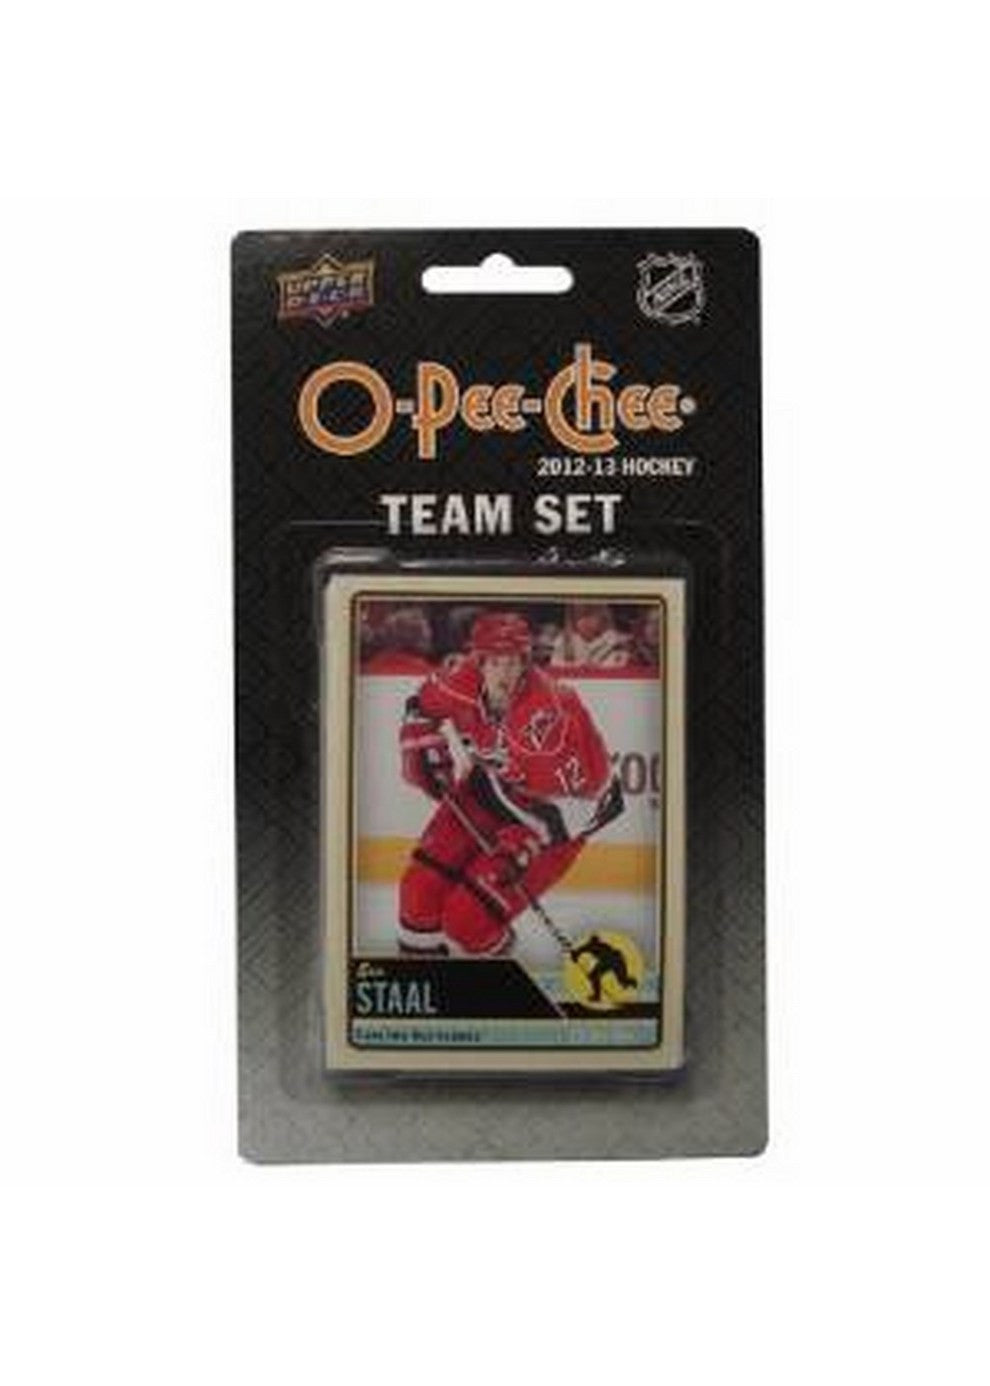 201213 Upper Deck O Pee Chee Team Card Set 17 Cards Carolina Hurricane